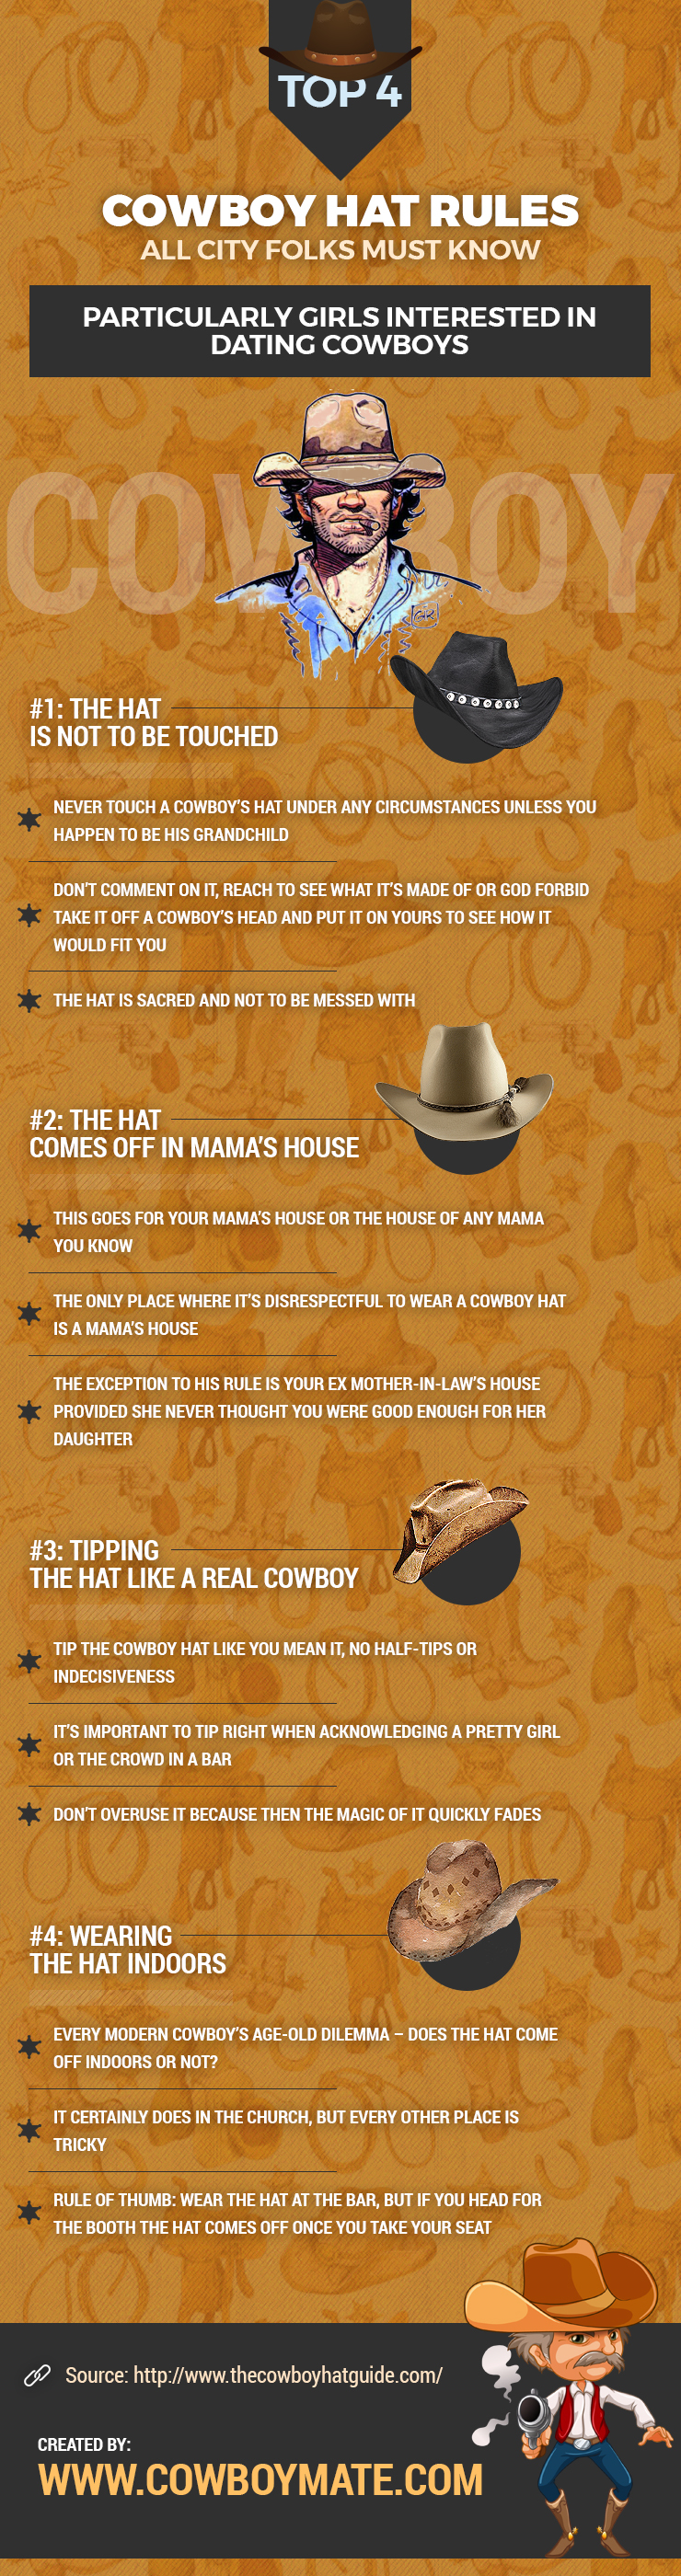 Top 4 Cowboy Hat Rules All City Folks Must Know